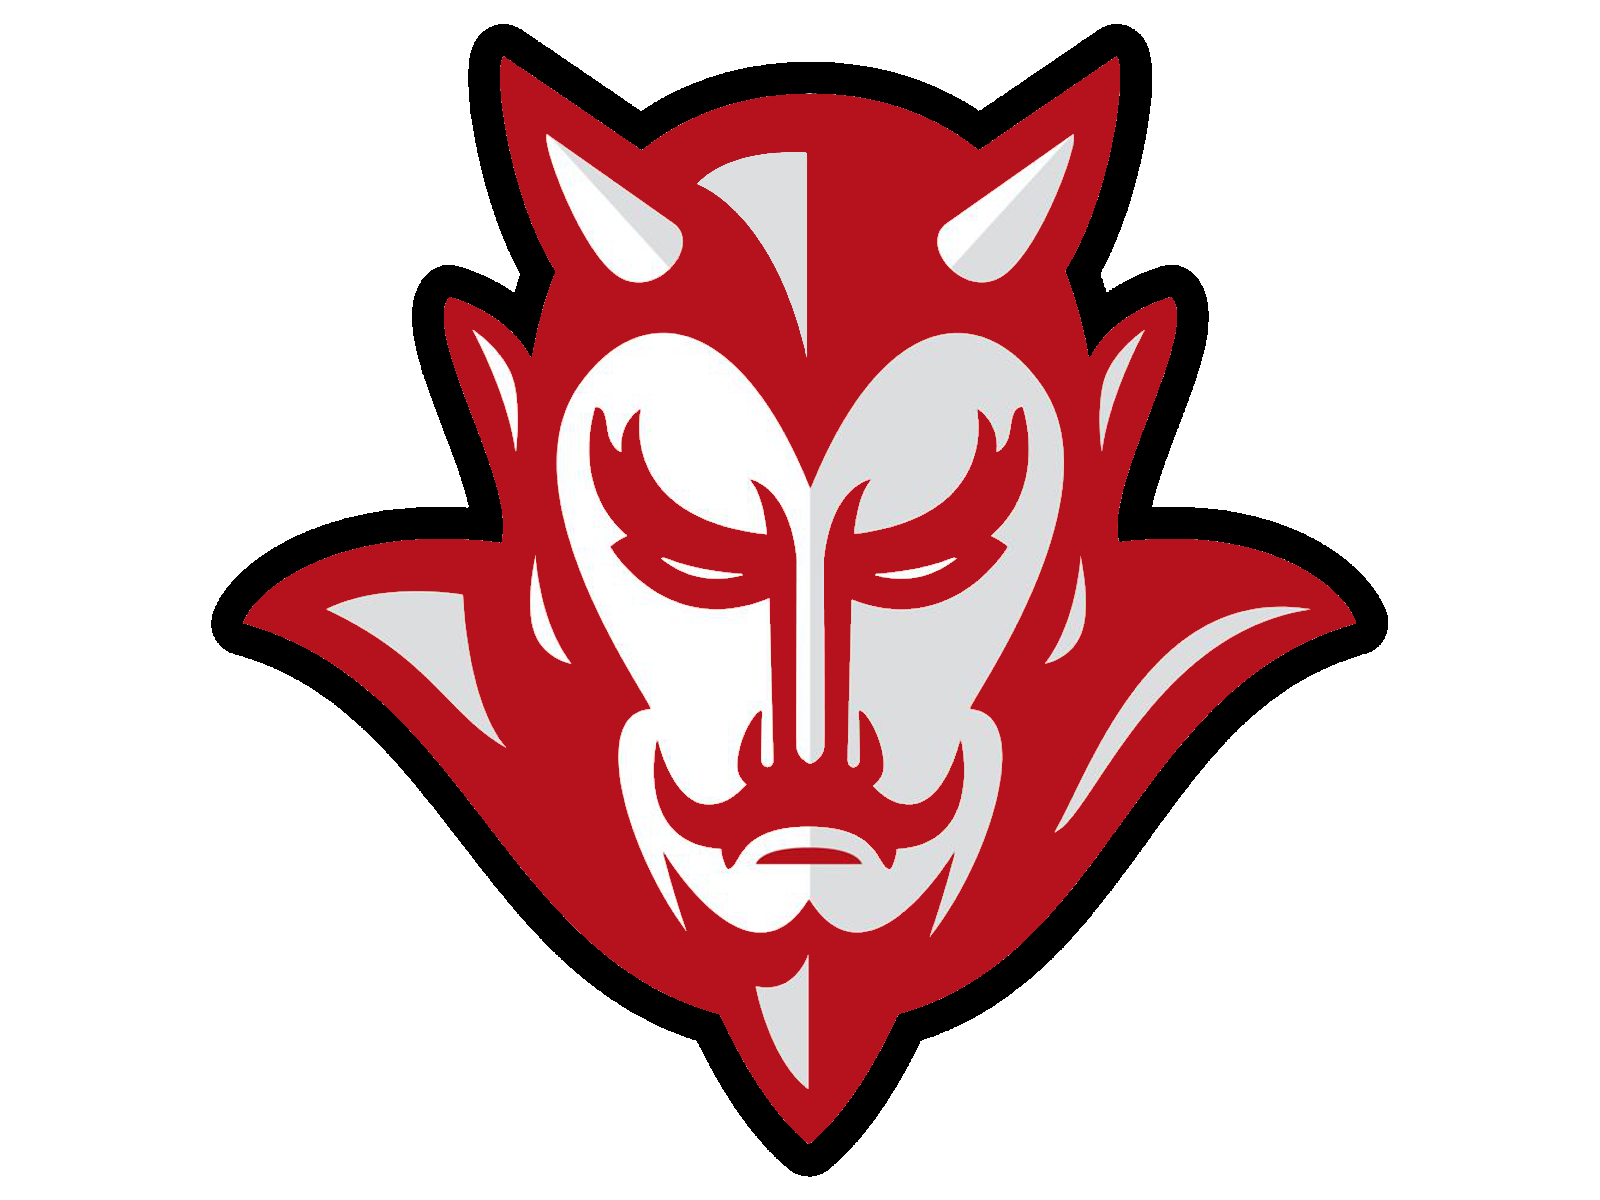 Devil logo clipart graphic royalty free download Red devils clip art clipart images gallery for free download ... graphic royalty free download